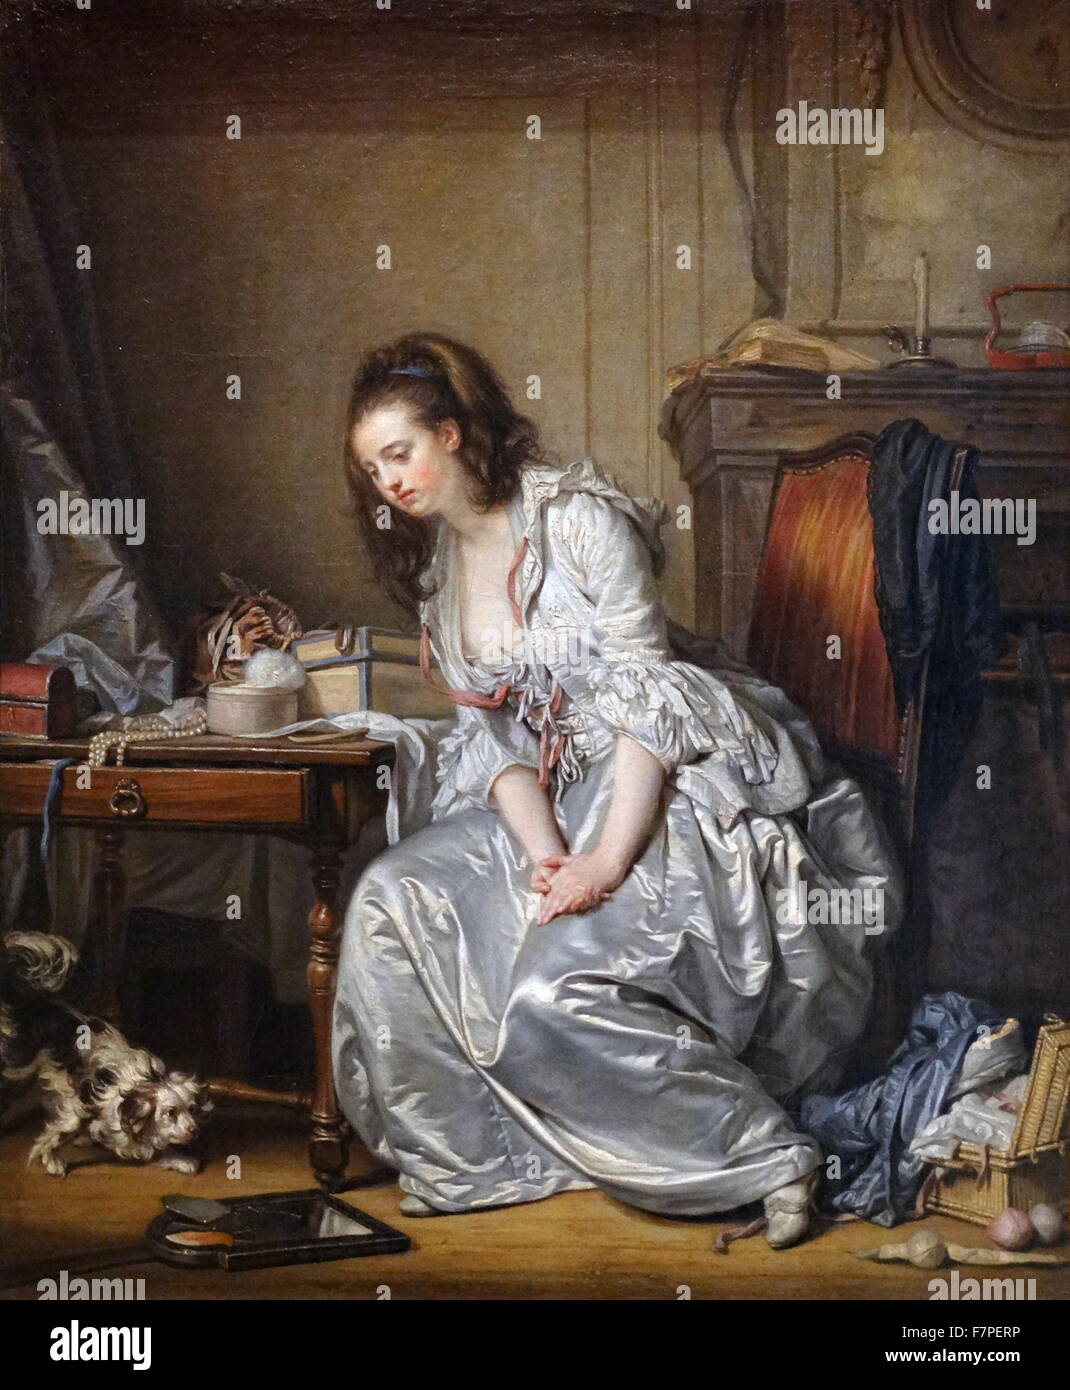 Painting titled 'The Broken Mirror' by Jean-Baptiste Greuze (1725-1805) French painter of portraits, genre scenes, Stock Photo